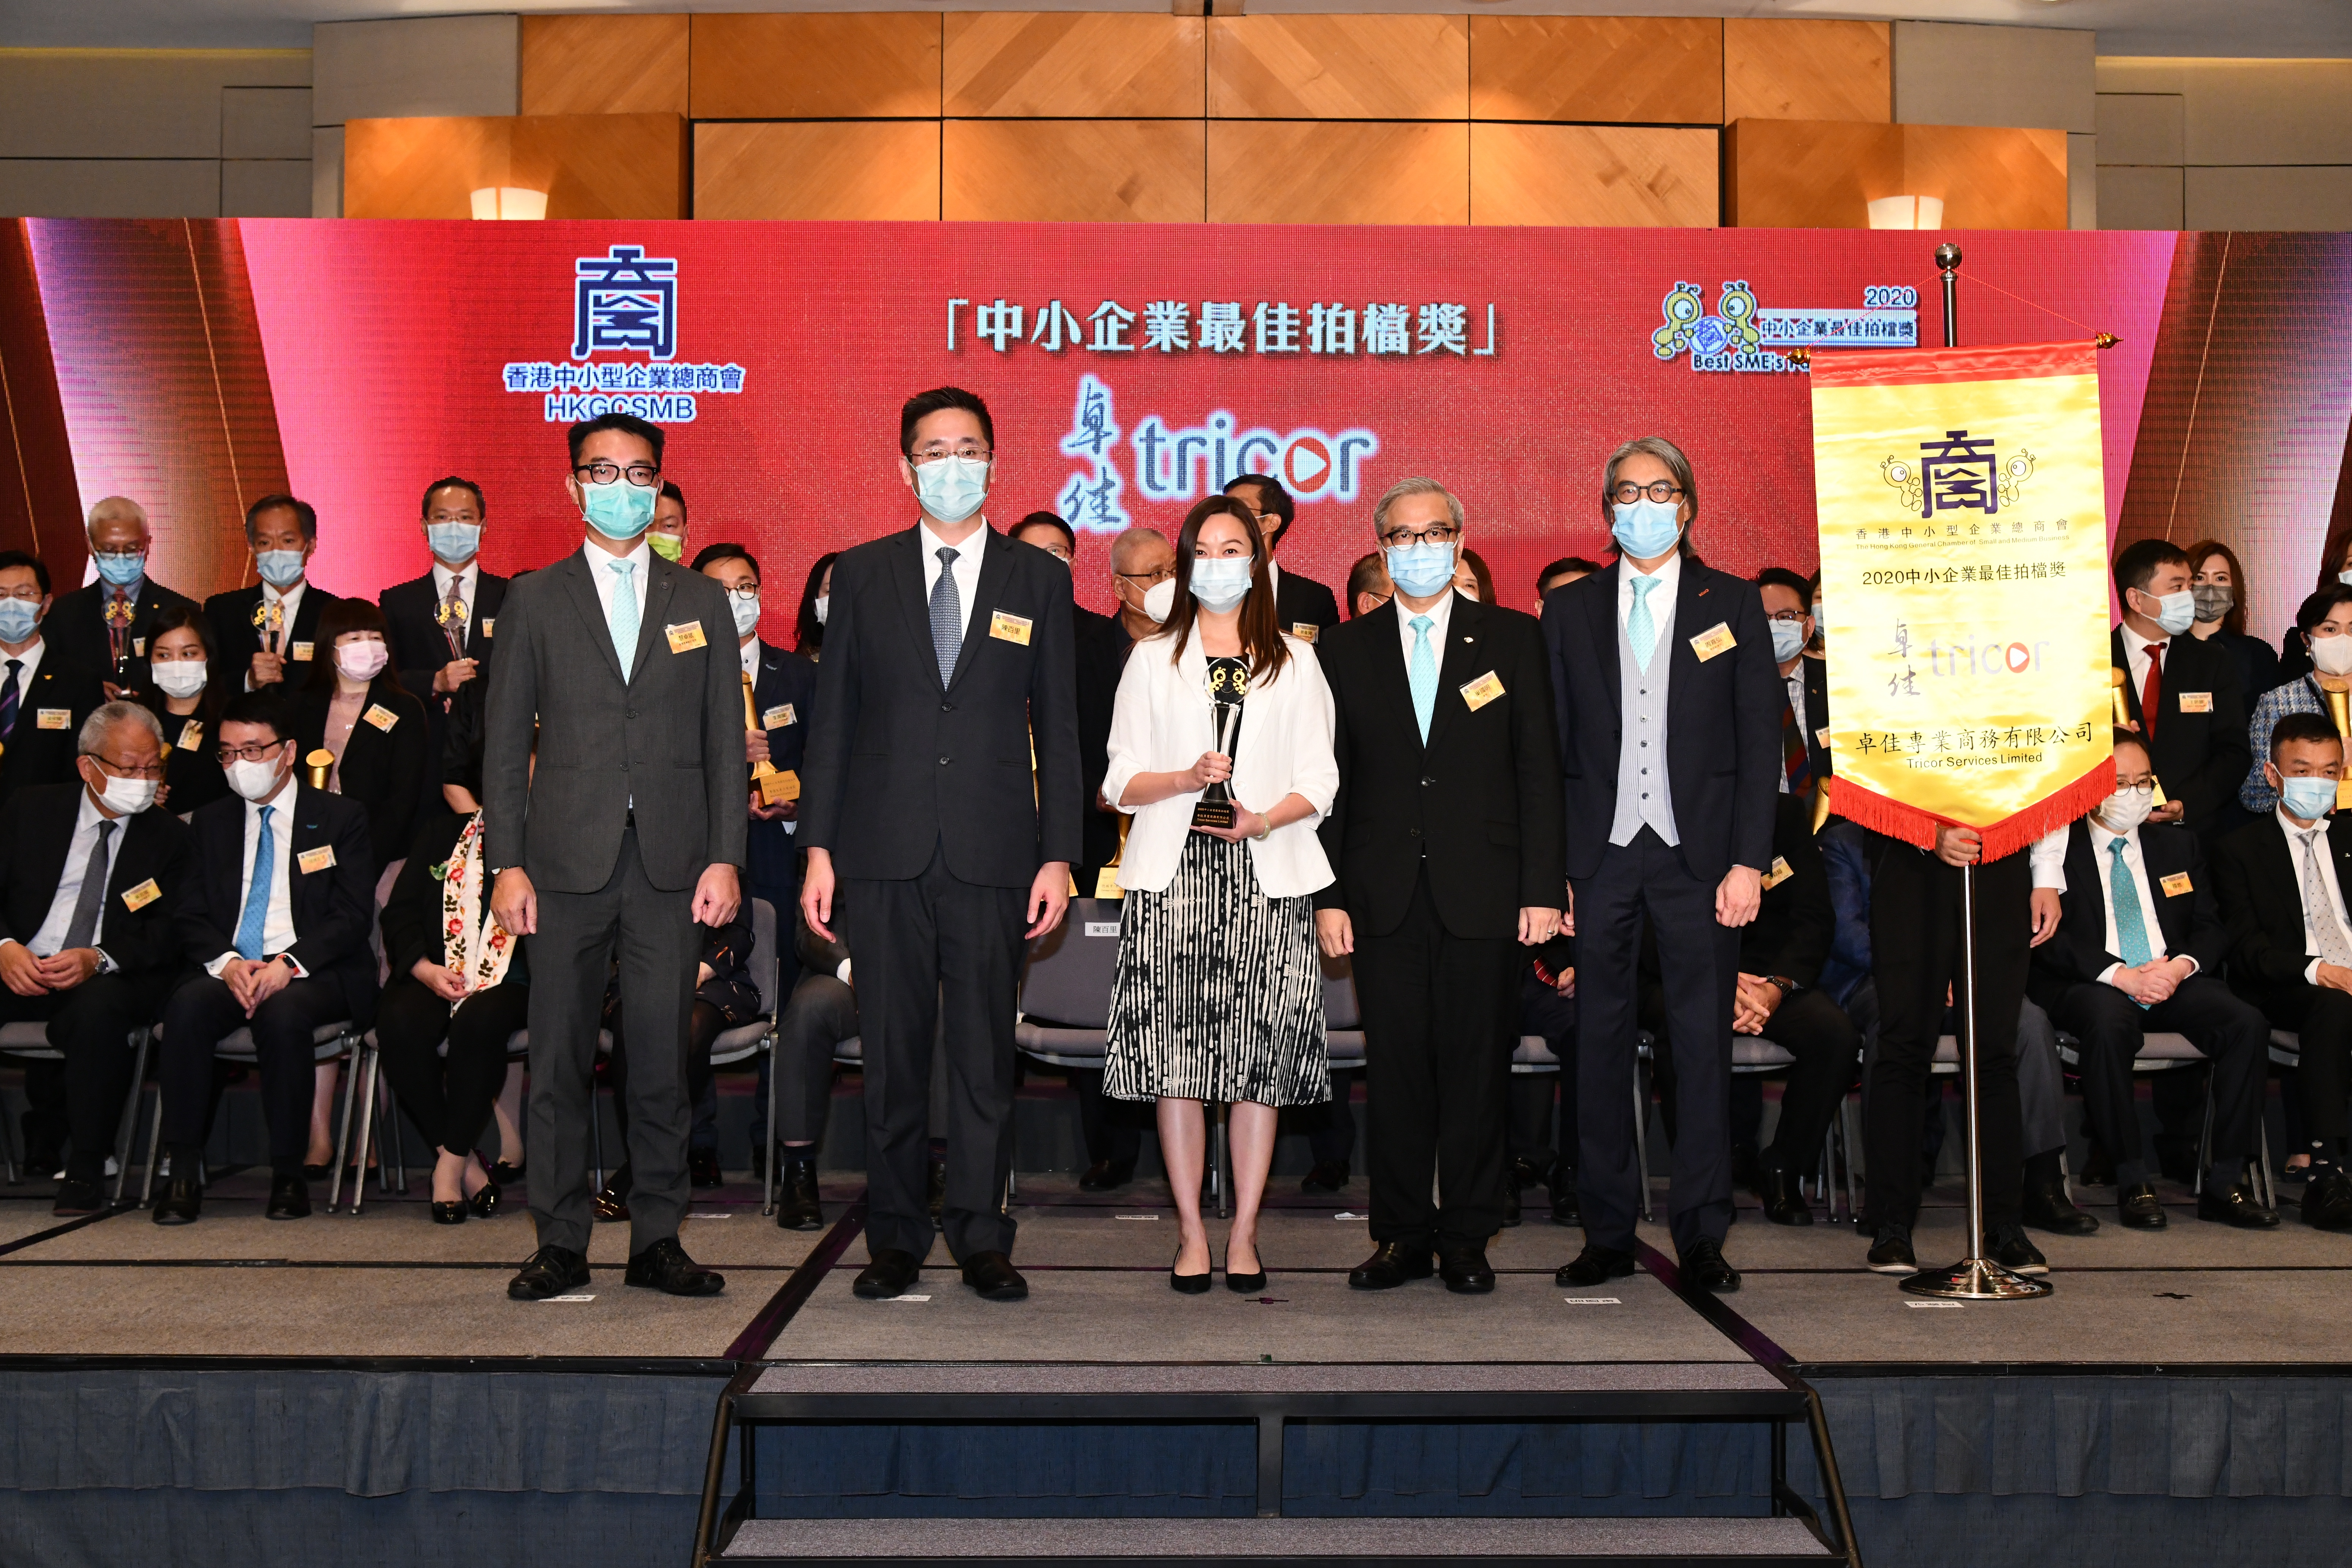 """Tricor wins """"Best SME's Partner Award 2020"""" in recognition of its dedication and support to SMEs in Hong Kong"""